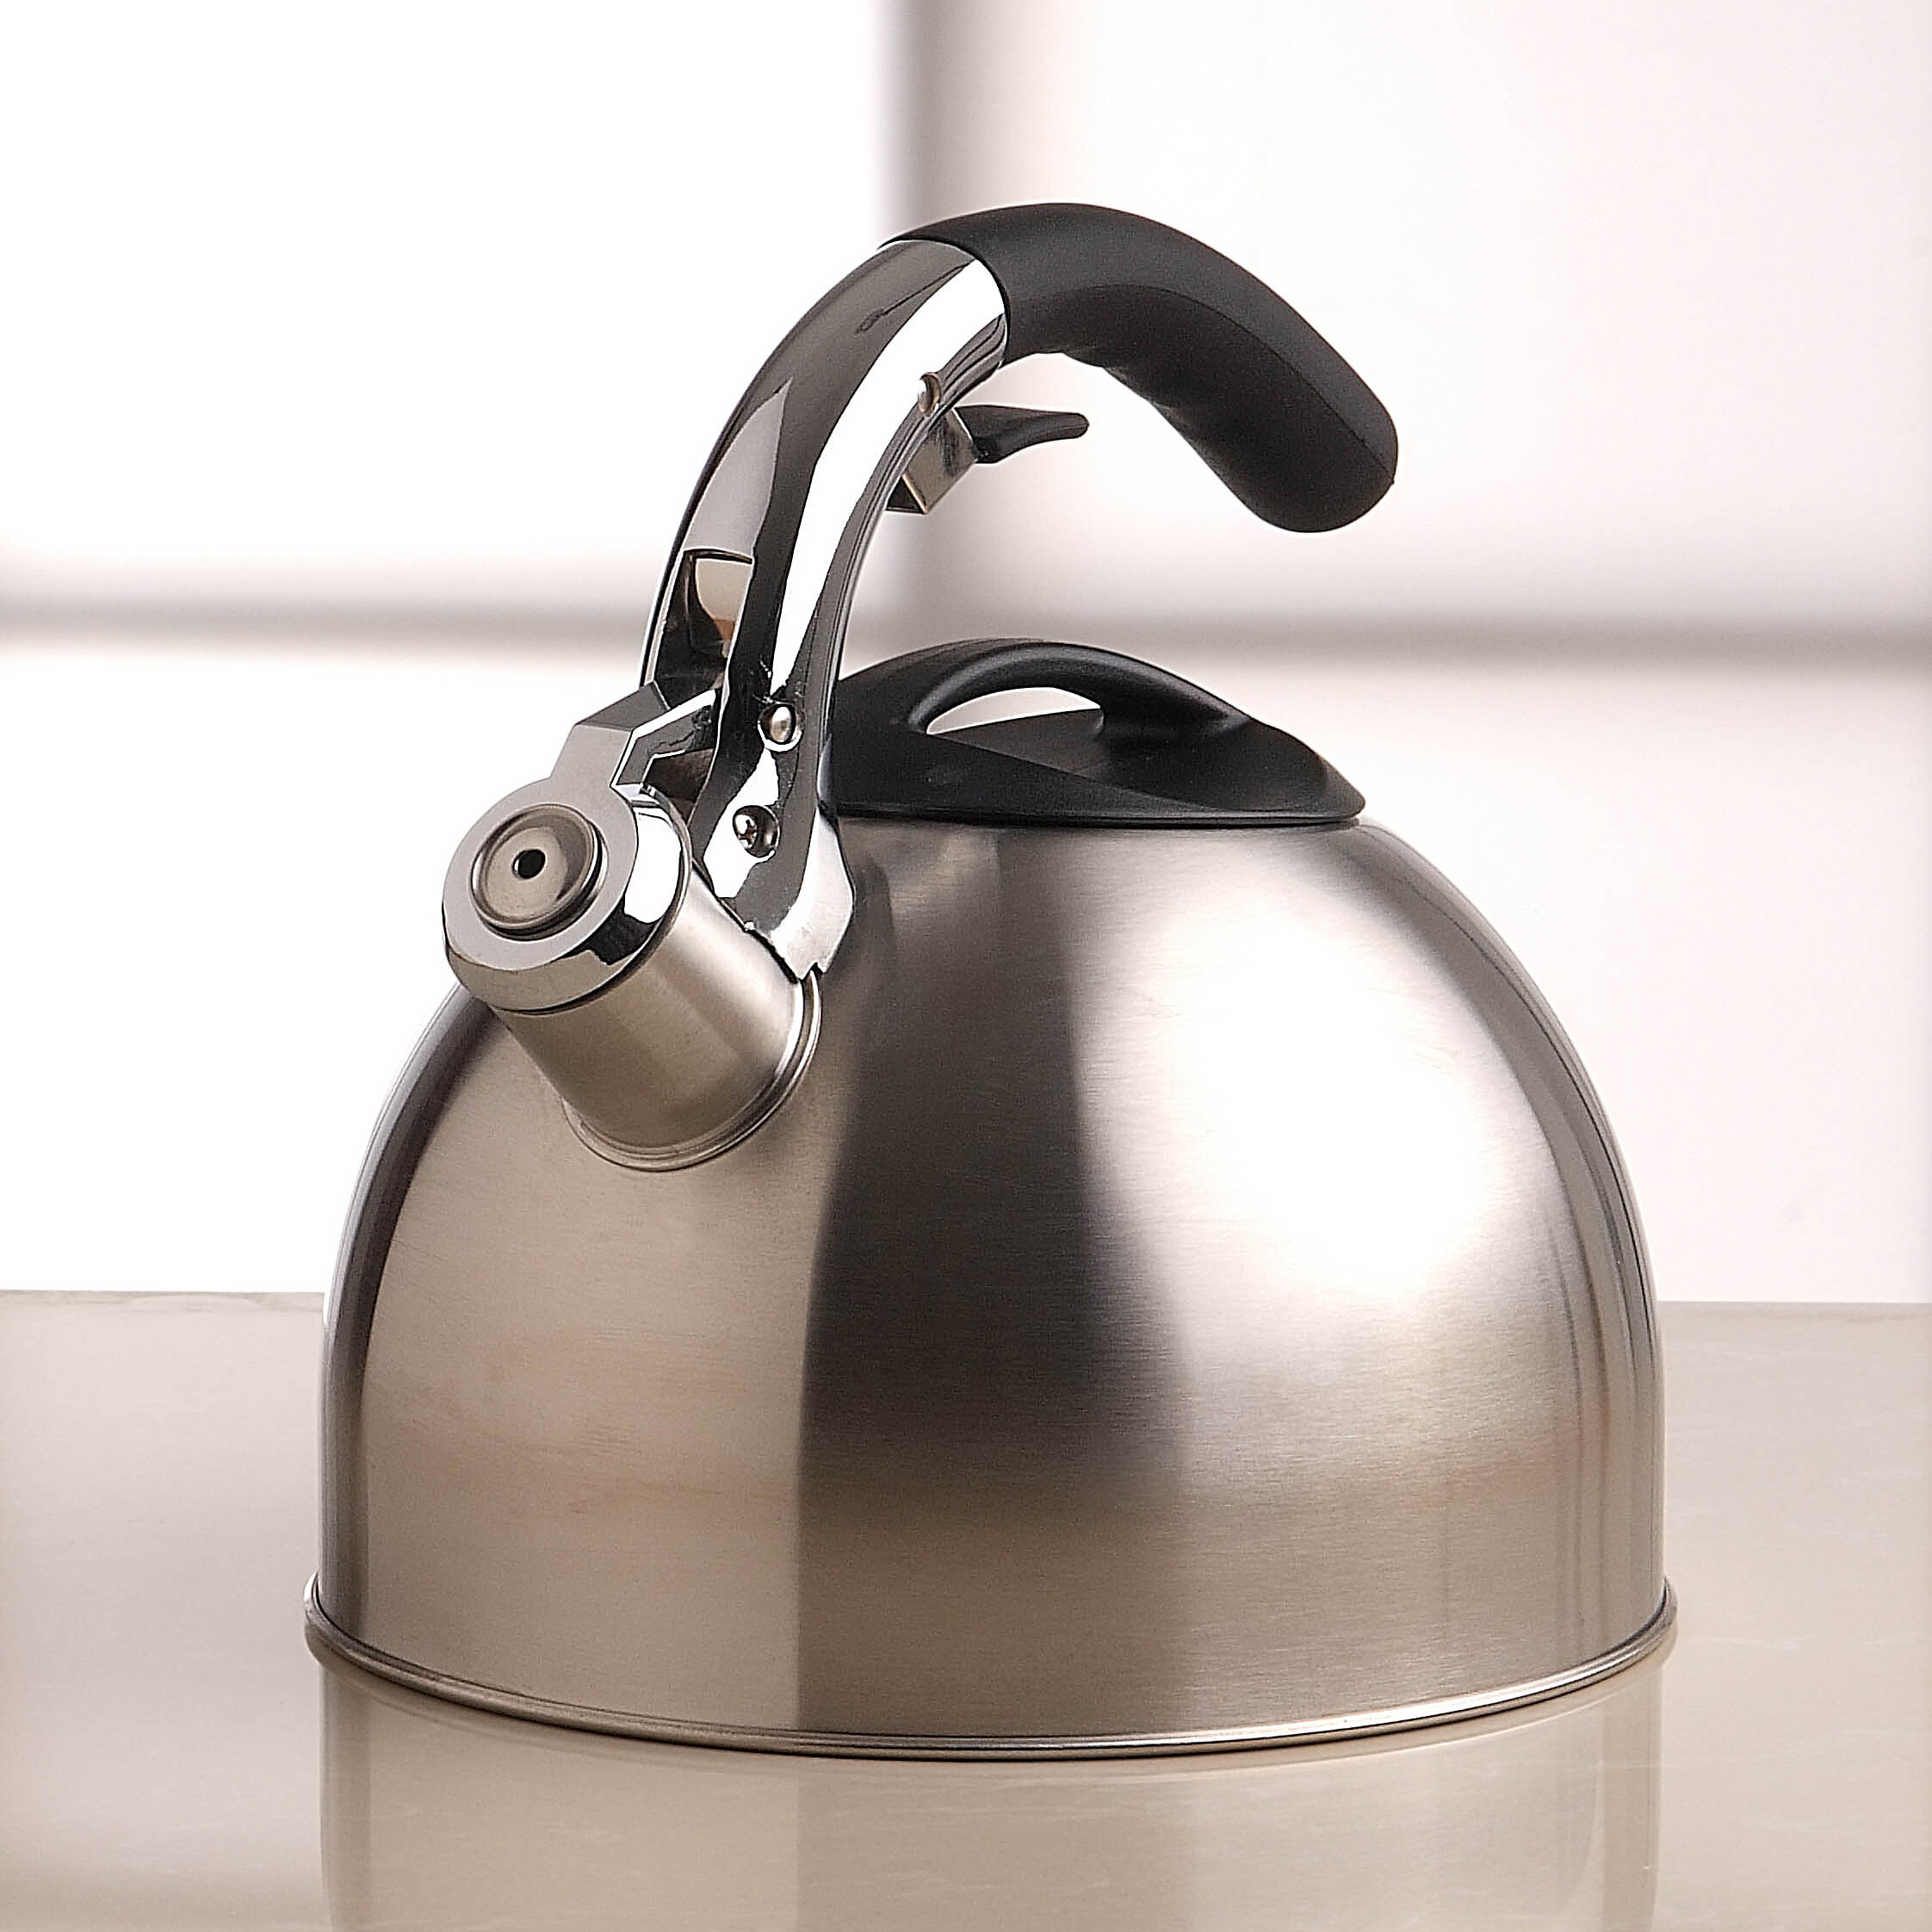 Primula 3 Qt Stainless Steel Stovetop Kettle Reviews Wayfair